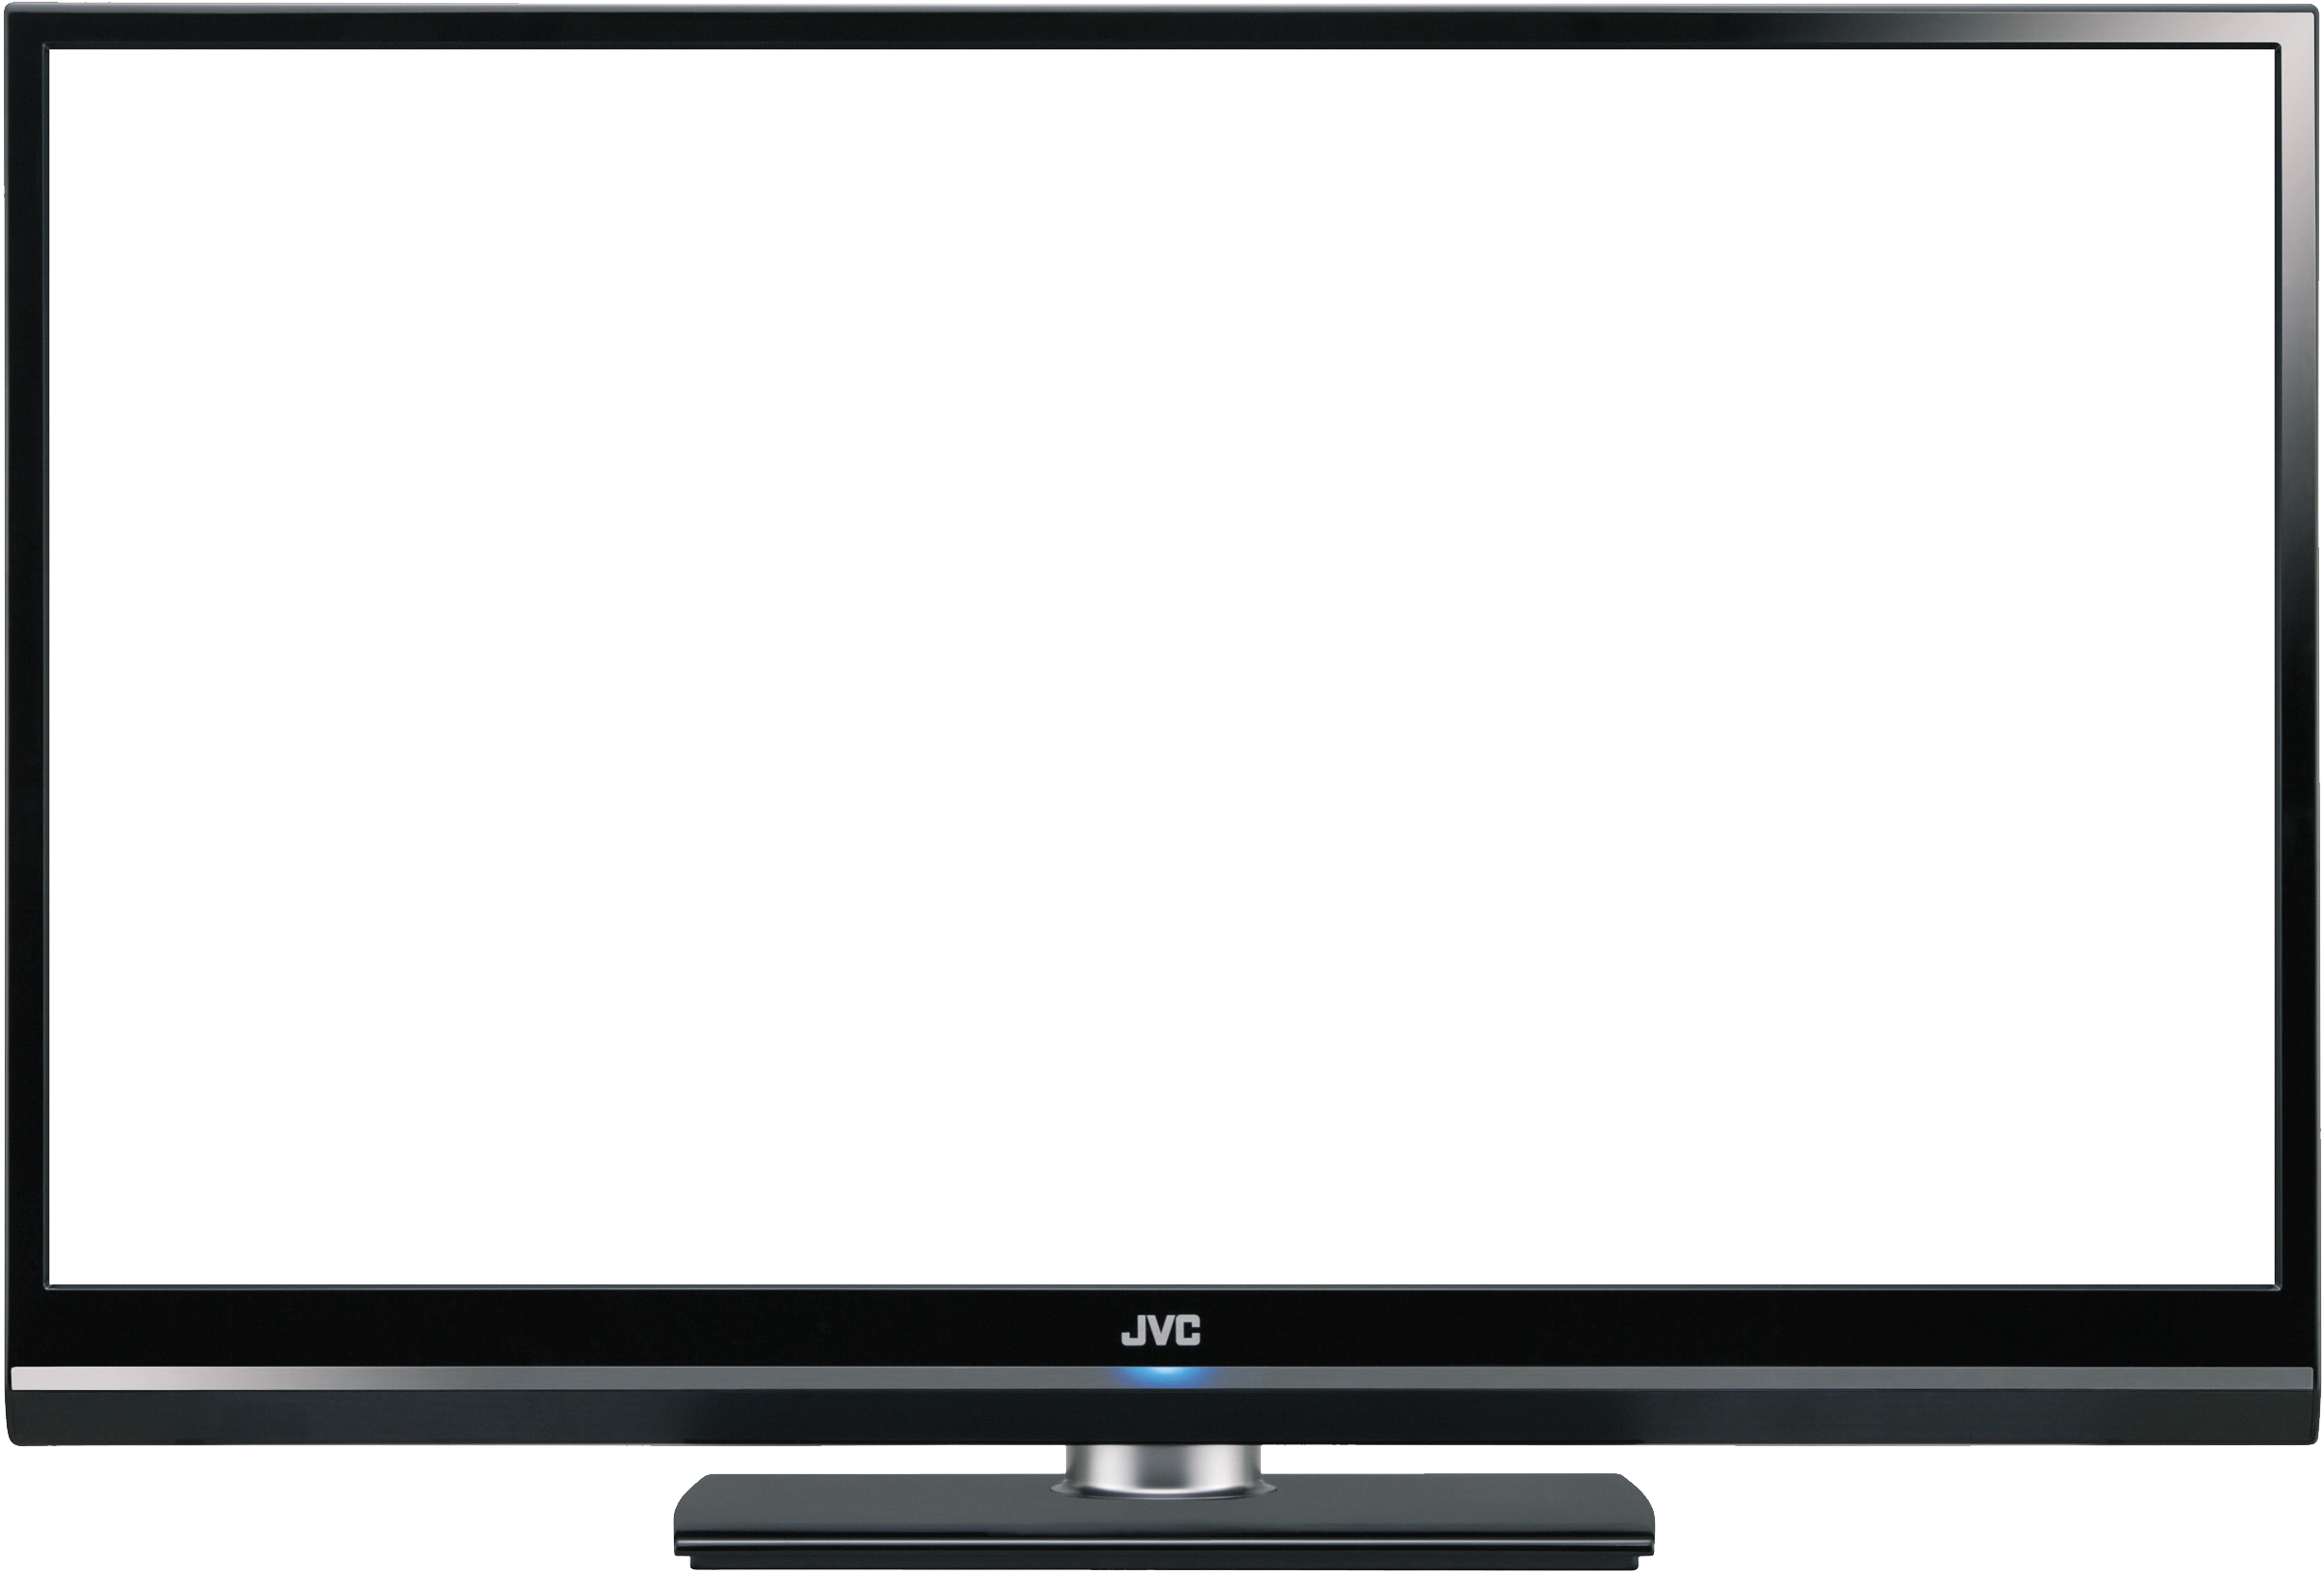 Monitor Transparent Lcd Png Image - Monitor, Transparent background PNG HD thumbnail